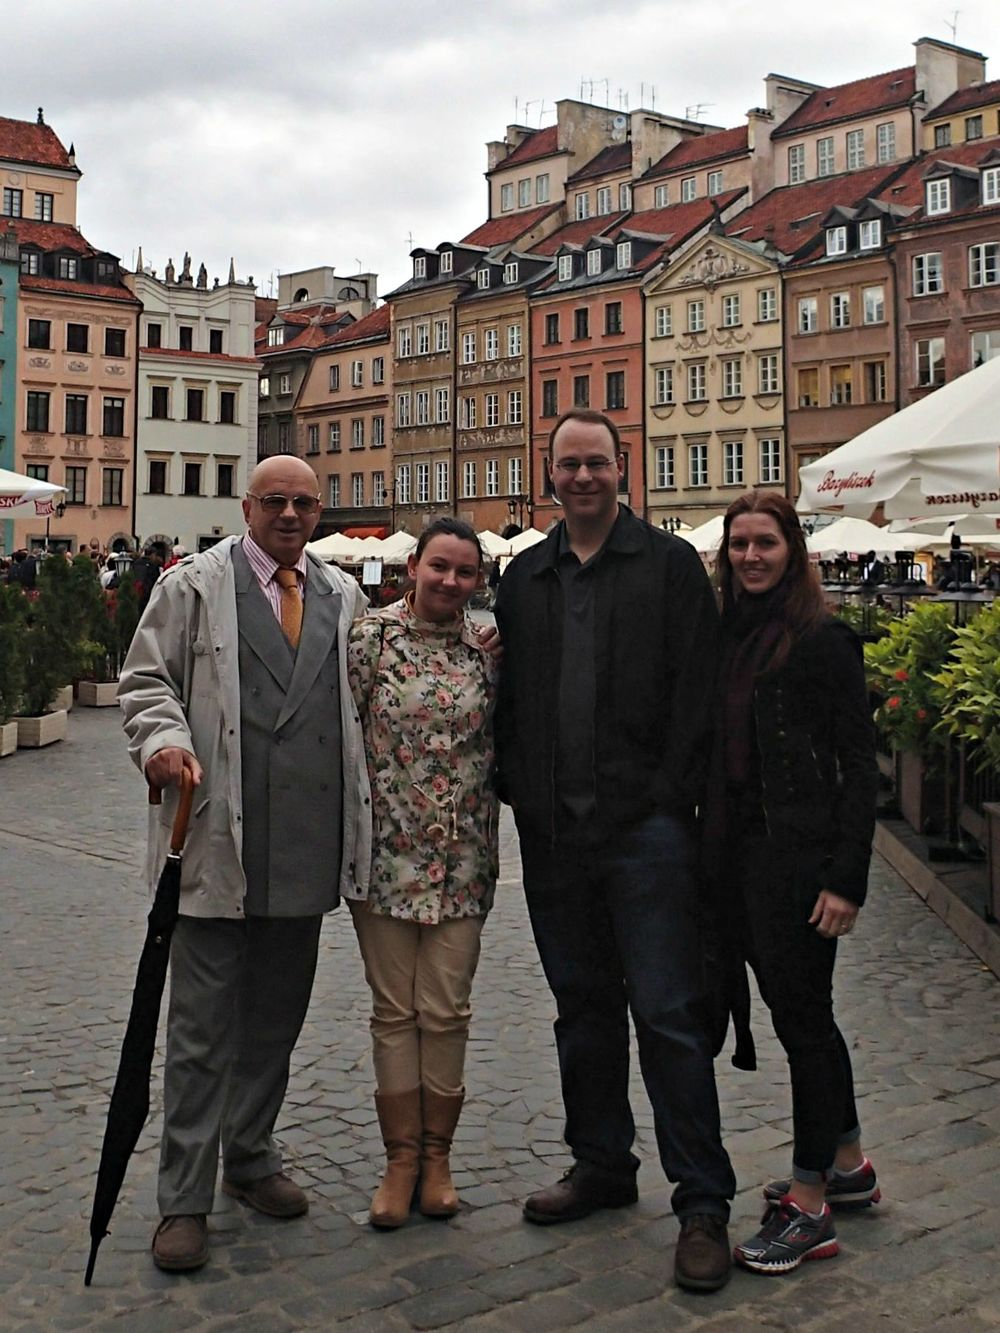 Standing in front of the Old Town (a UNESCO heritage site).  From left to right: Stefan, Agata (a descendant of my great grandmother's sister), my brother, Doug and his wife, Karyn.